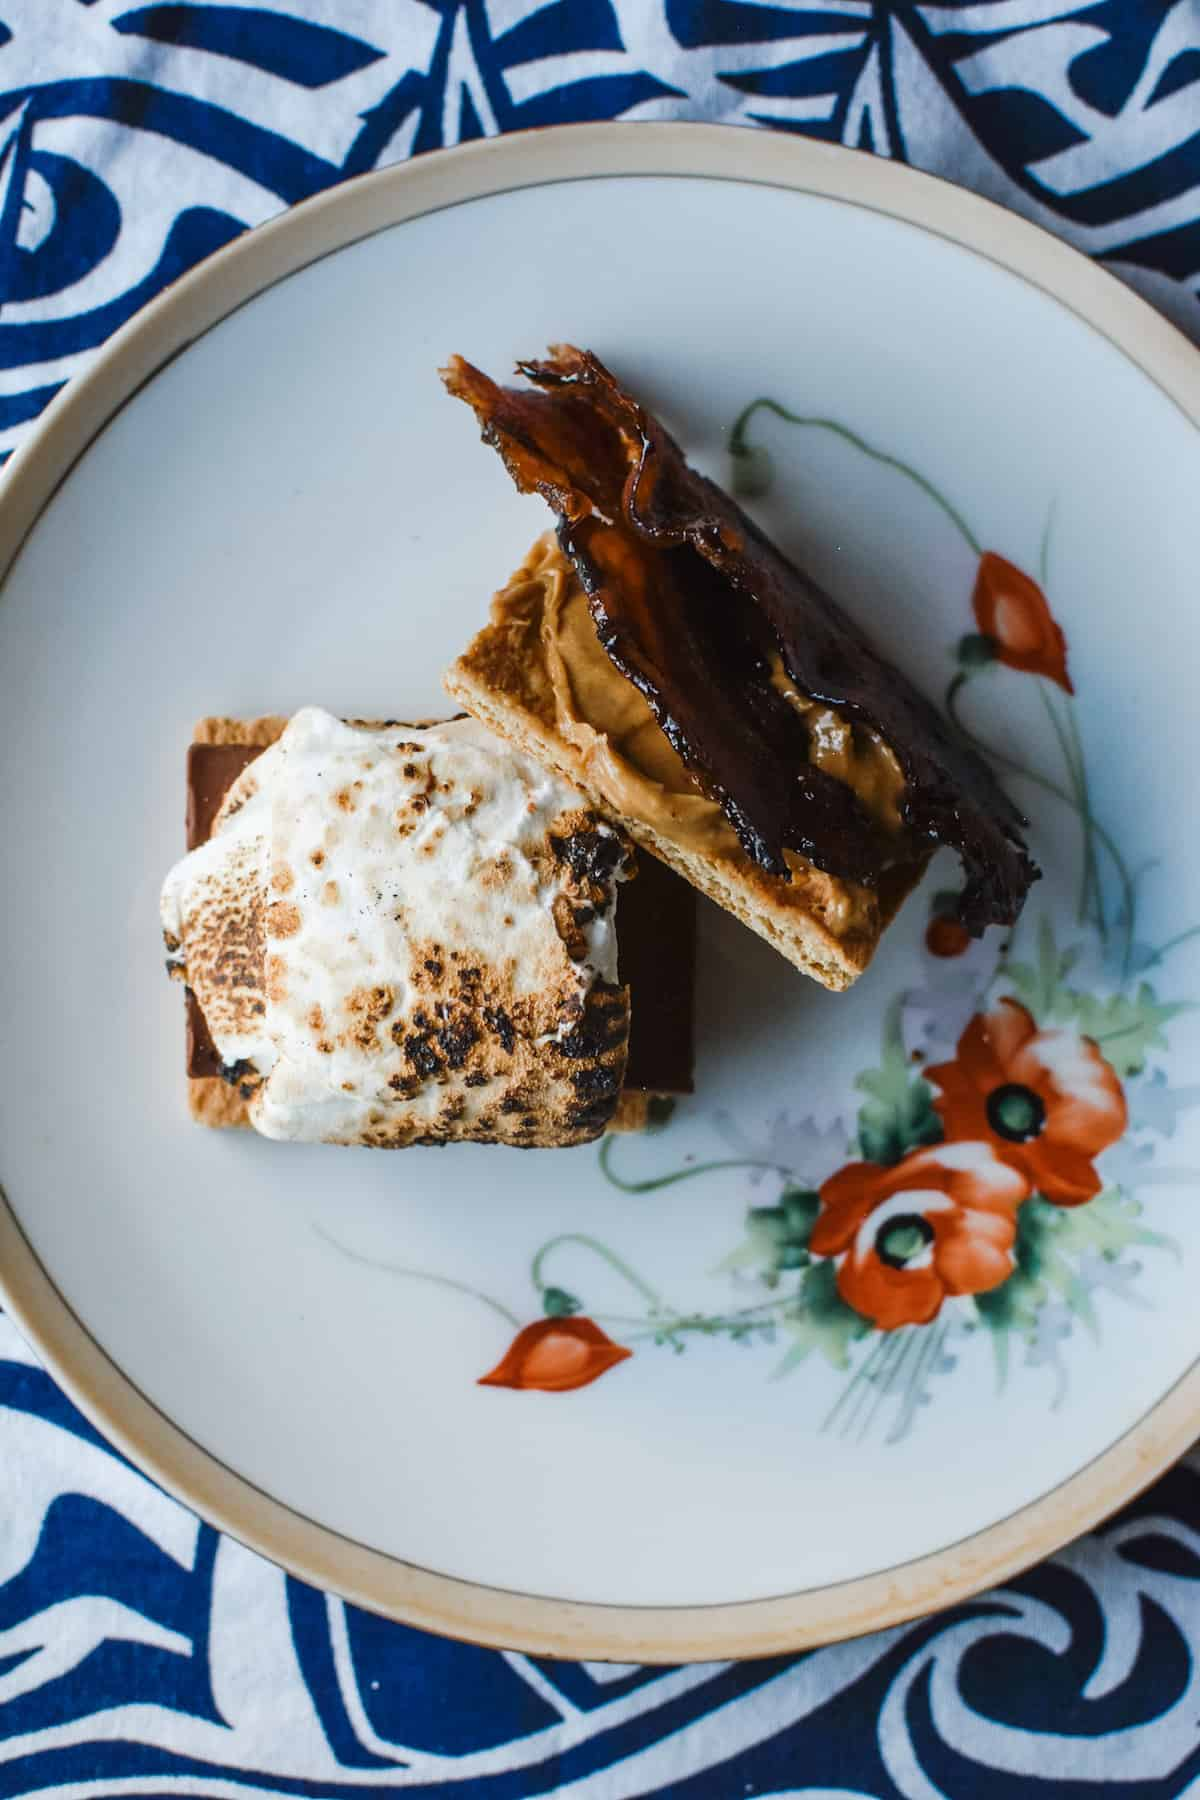 A s'more with peanut butter and candied bacon sitting on a floral plate on a blue and white cloth.